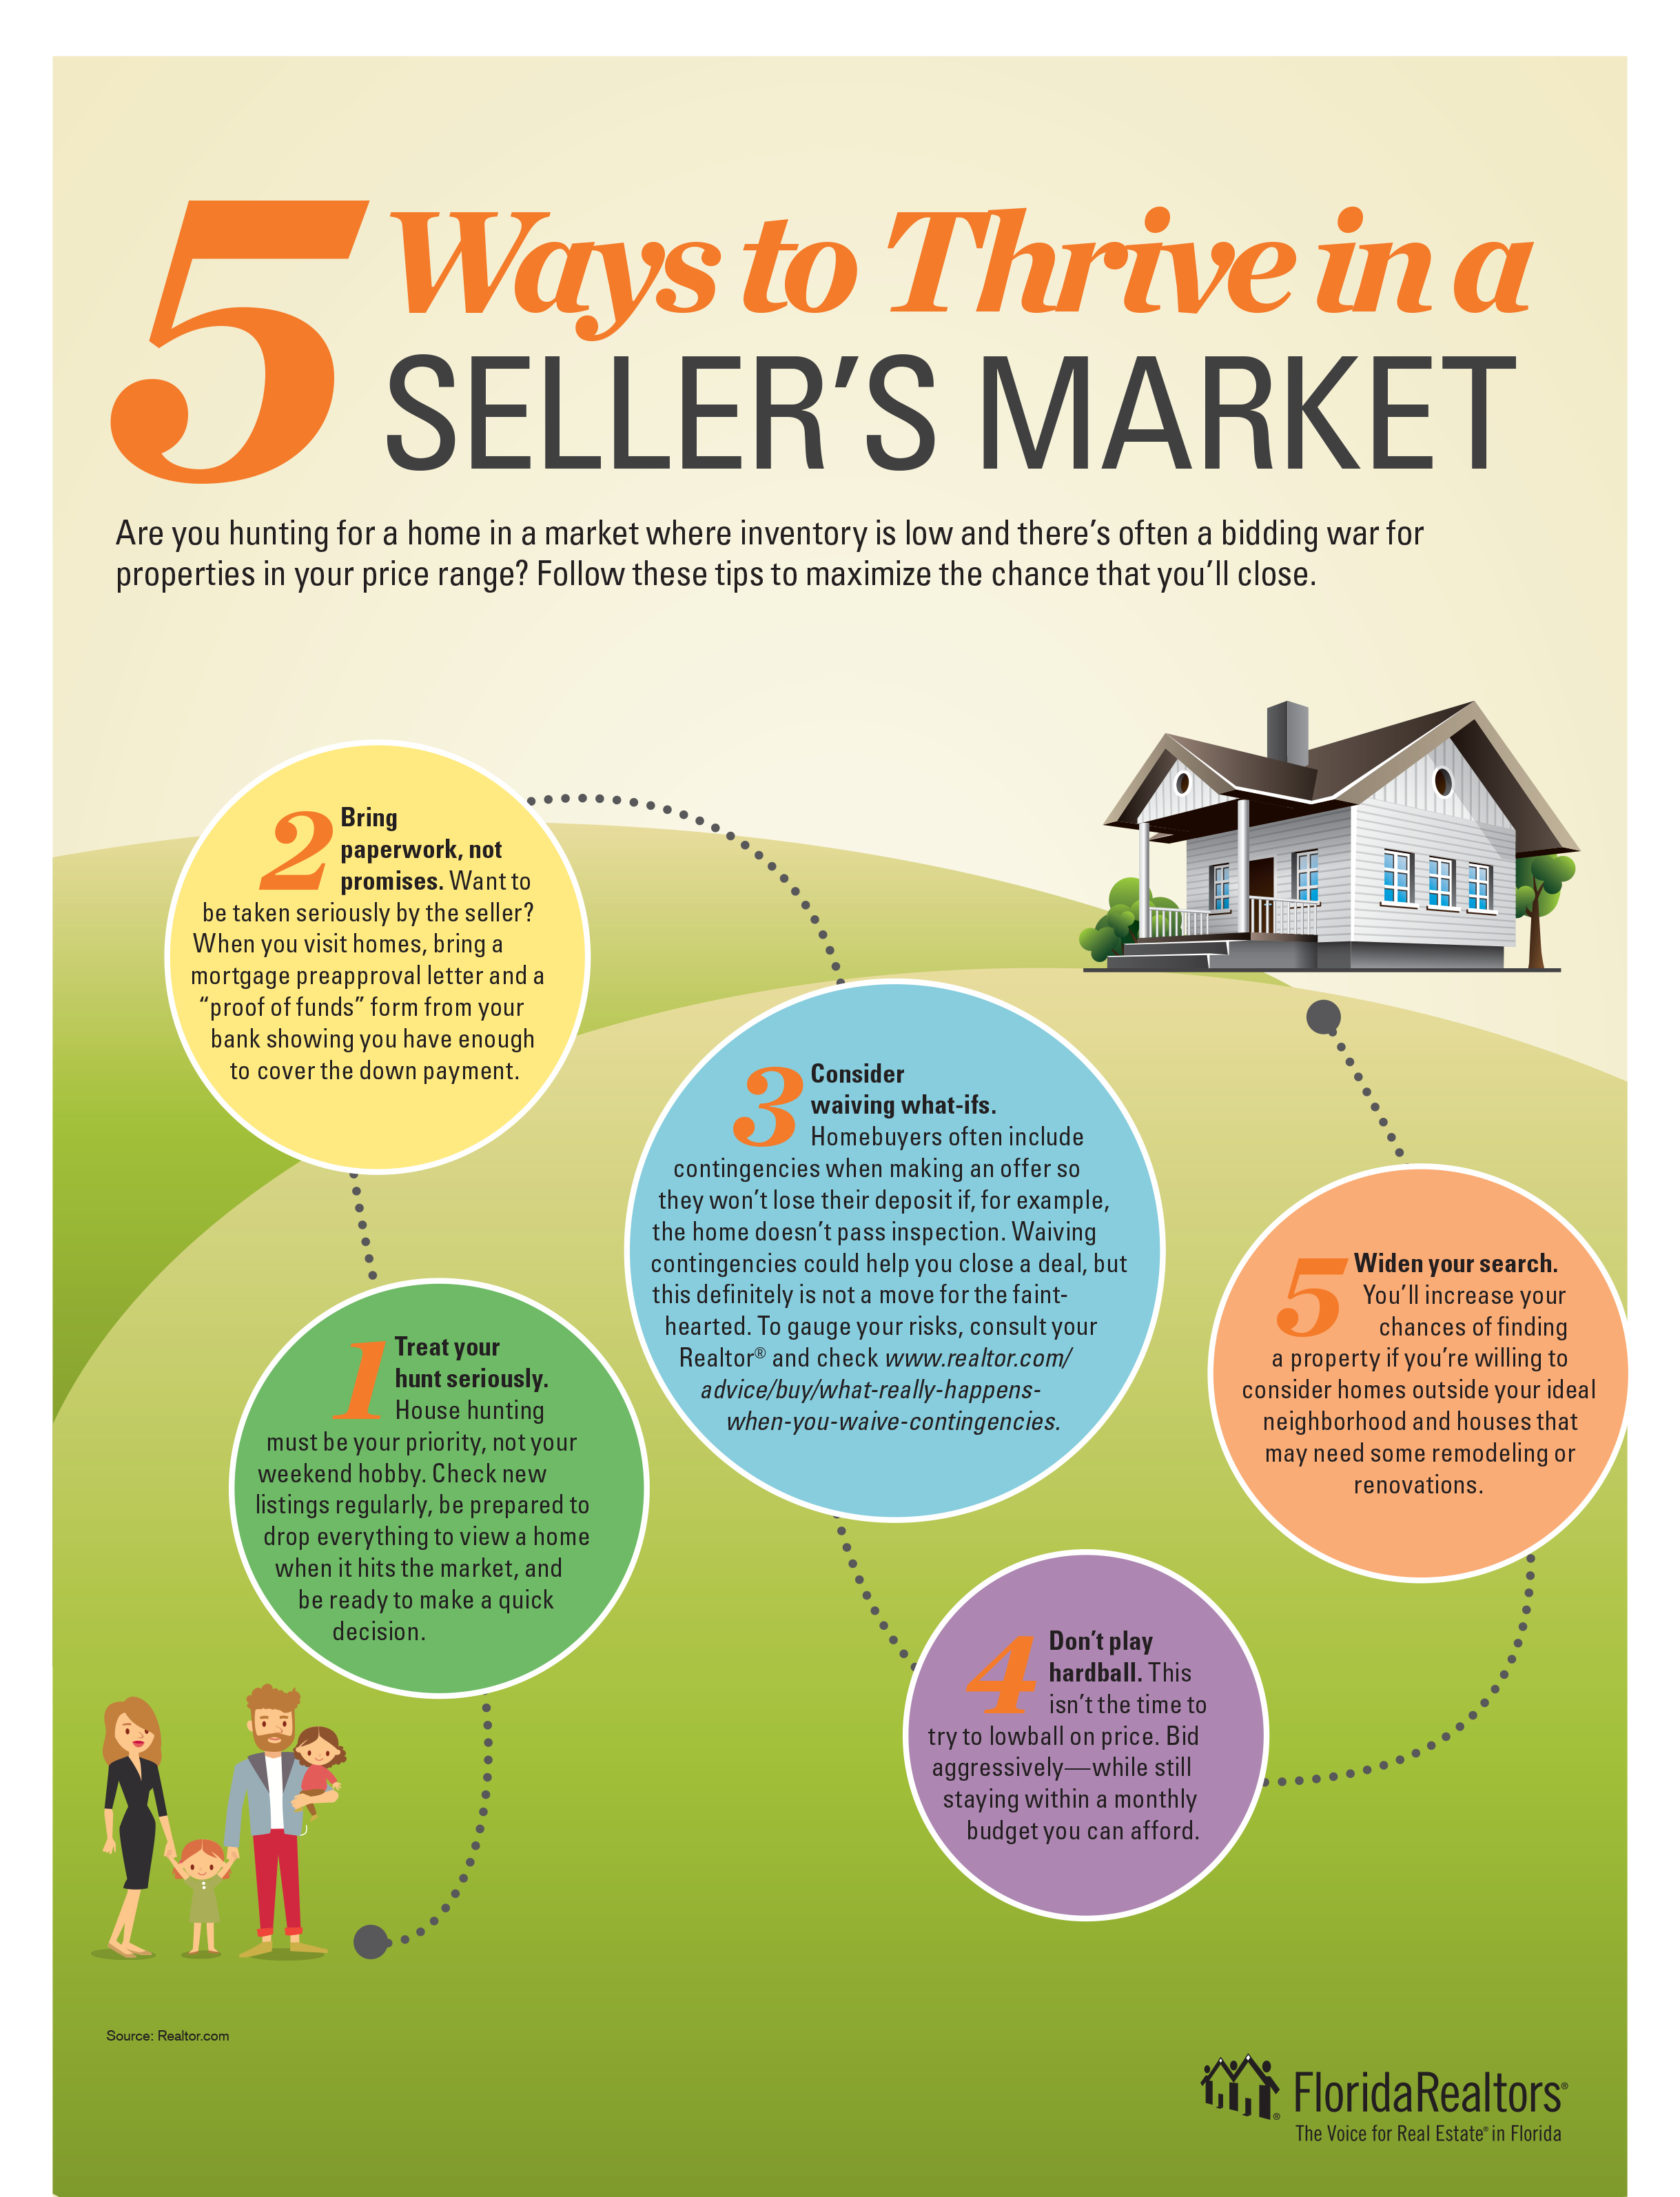 5 Ways to Thrive in a Seller's Market